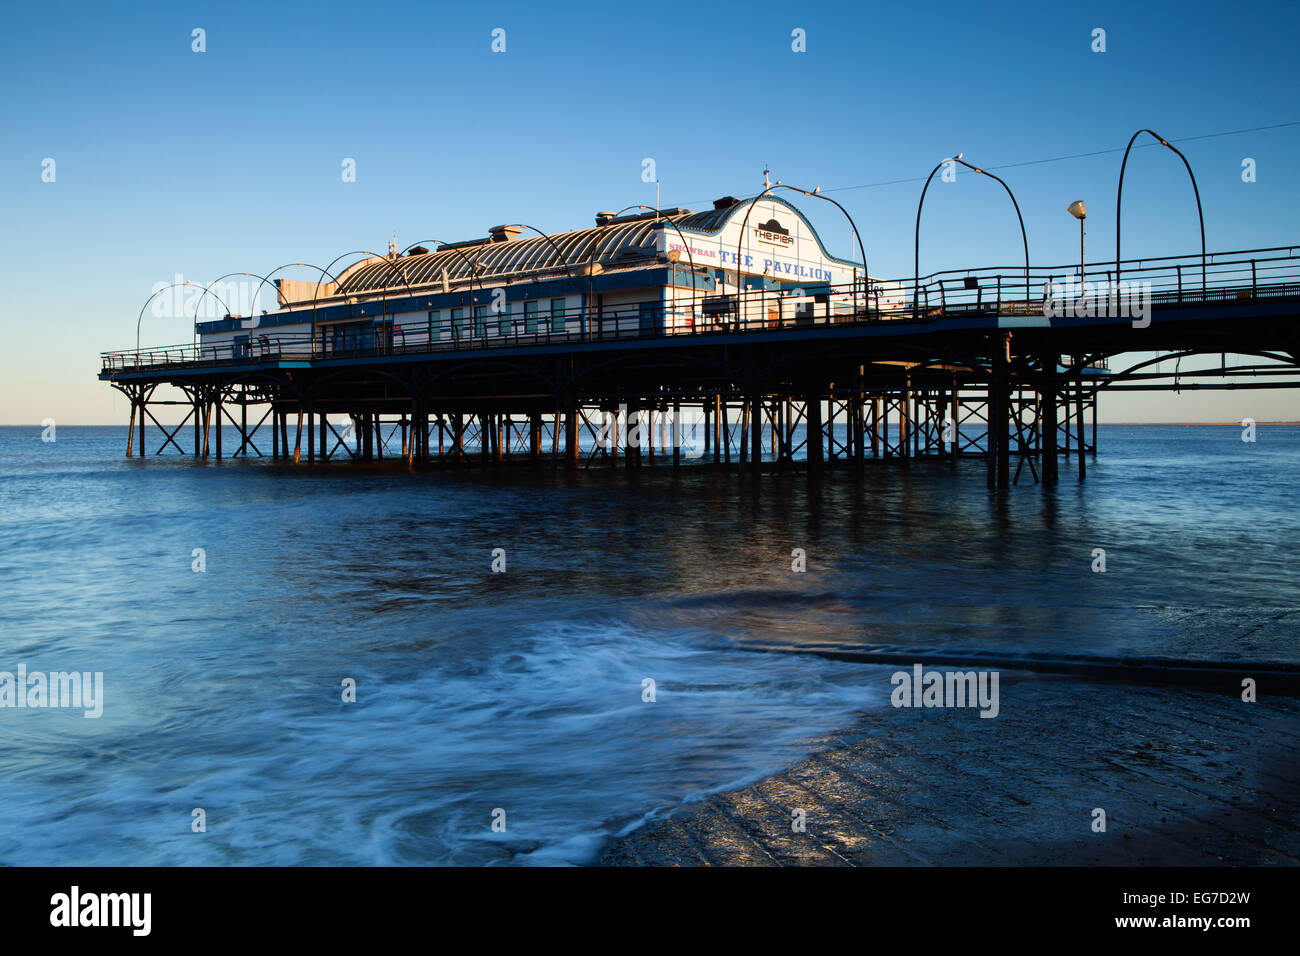 Cleethorpes Pier on the North East Lincolnshire coast at high tide. February 2015. - Stock Image